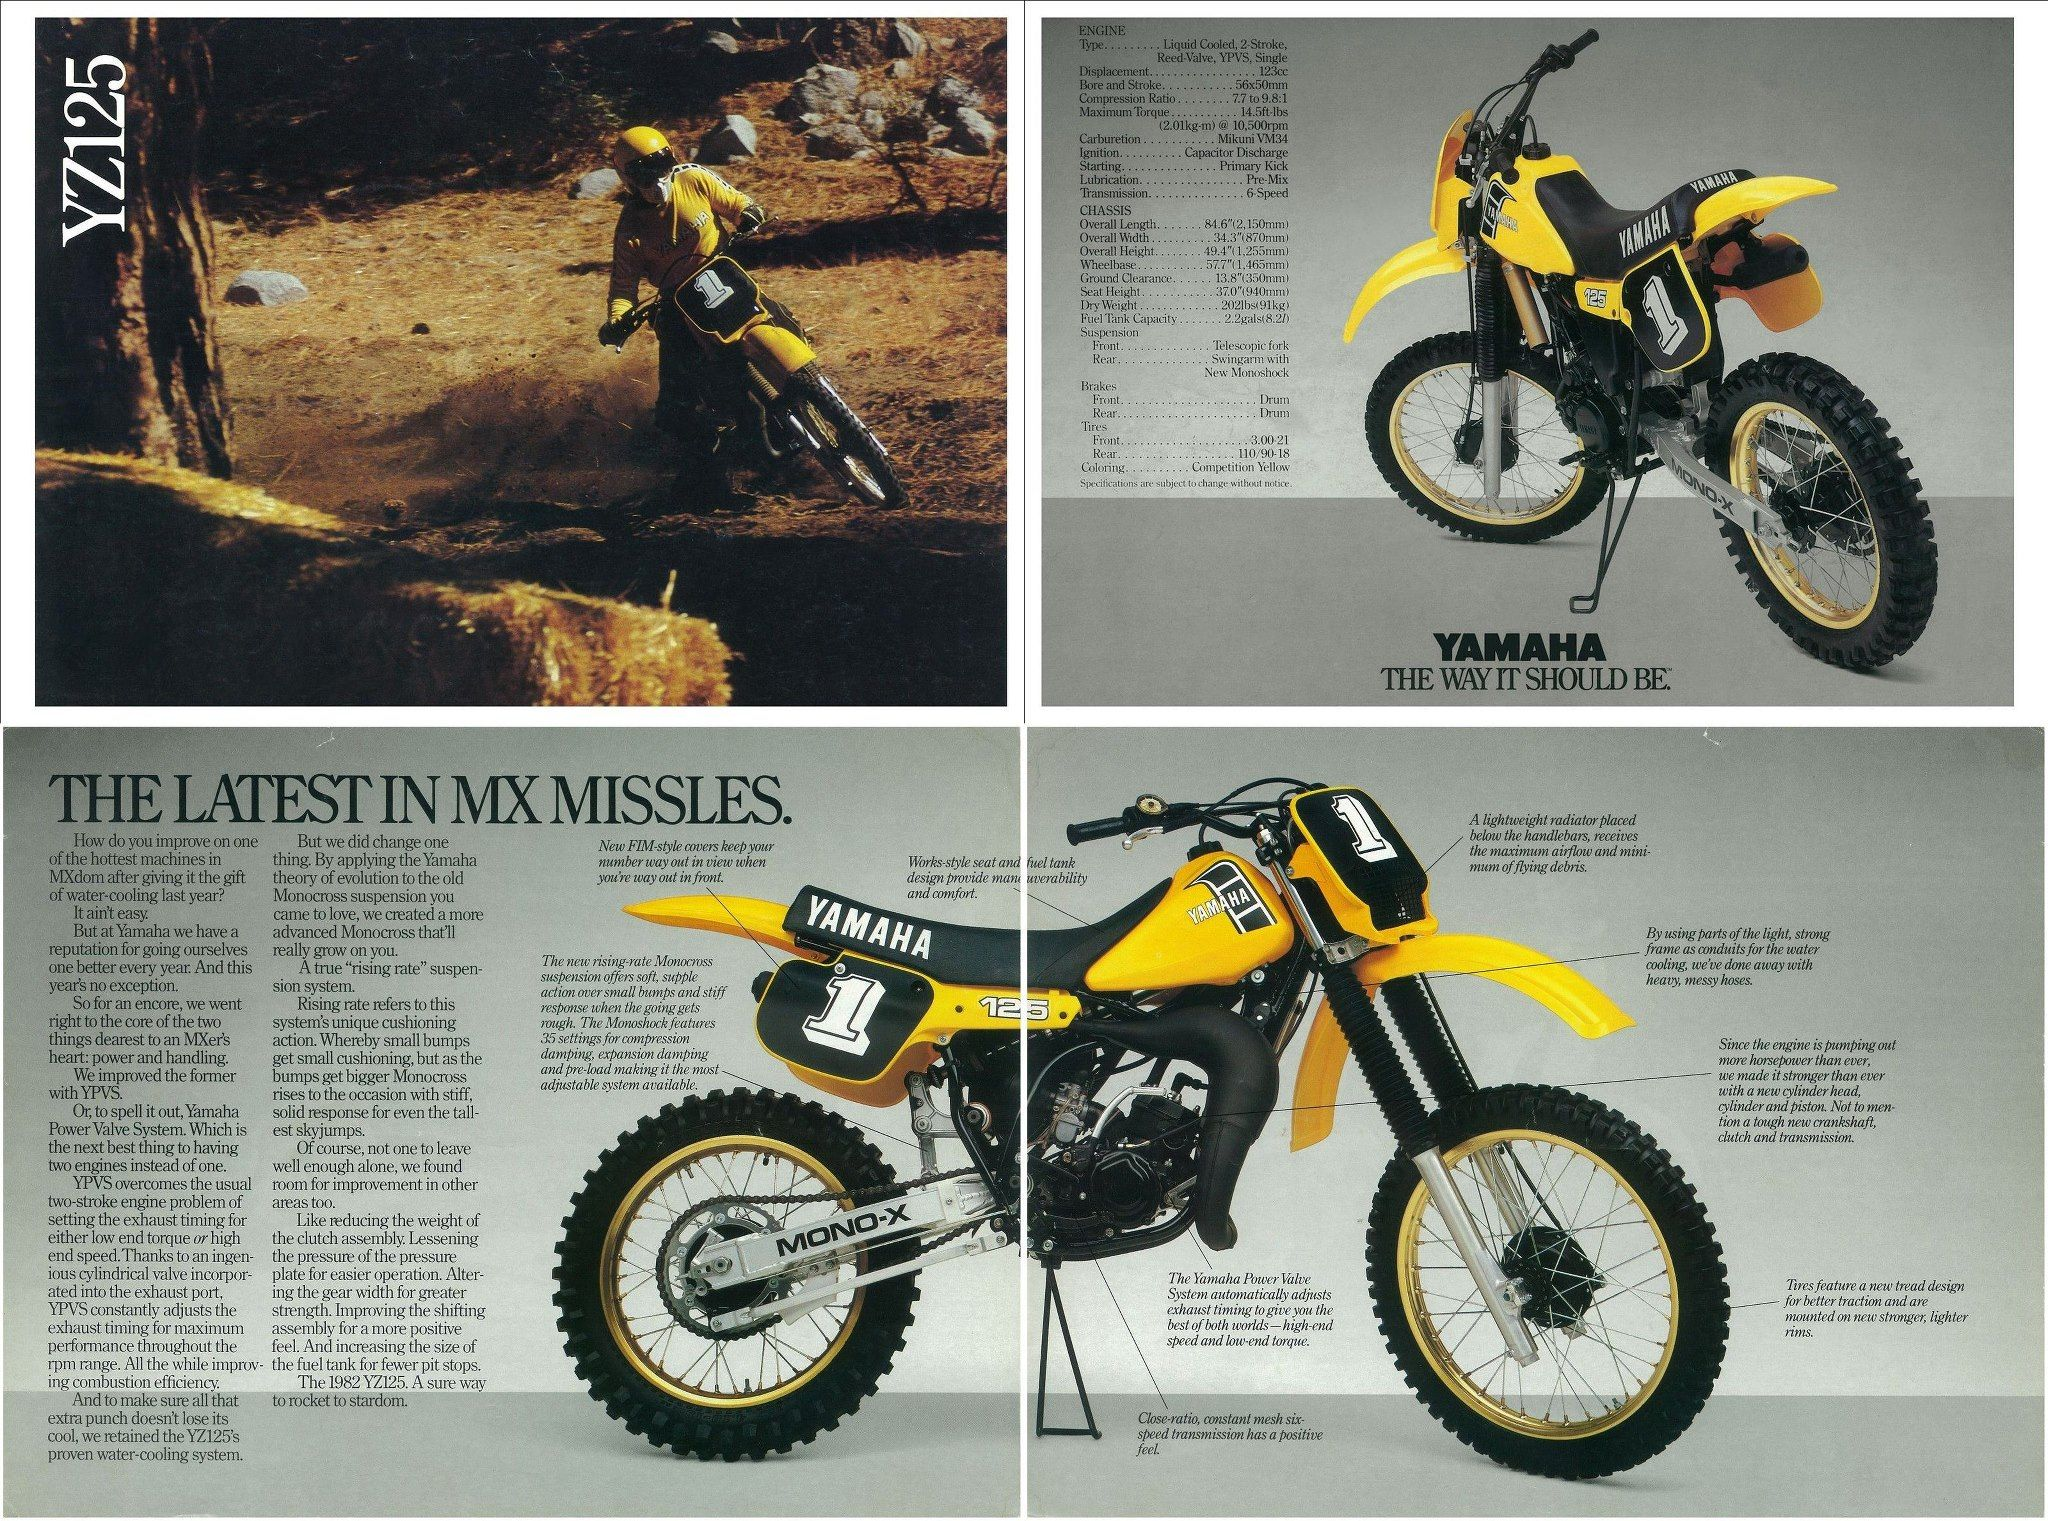 1982 Yz100 Pictures to Pin on Pinterest - PinsDaddy